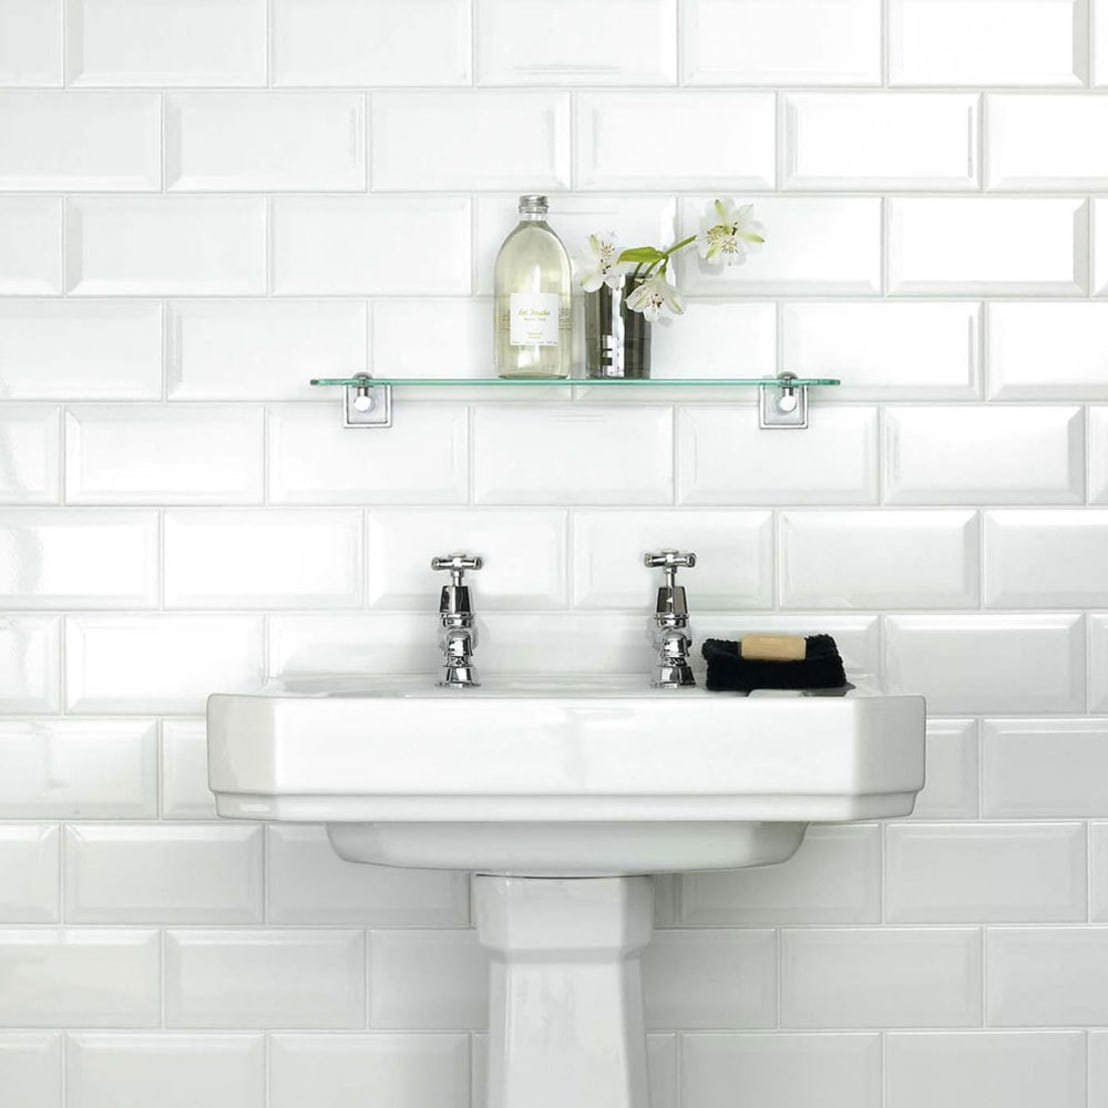 how to whiten bathroom tiles u bahn fliesen 6 m 246 glichkeiten den trend zu dir nach 23498